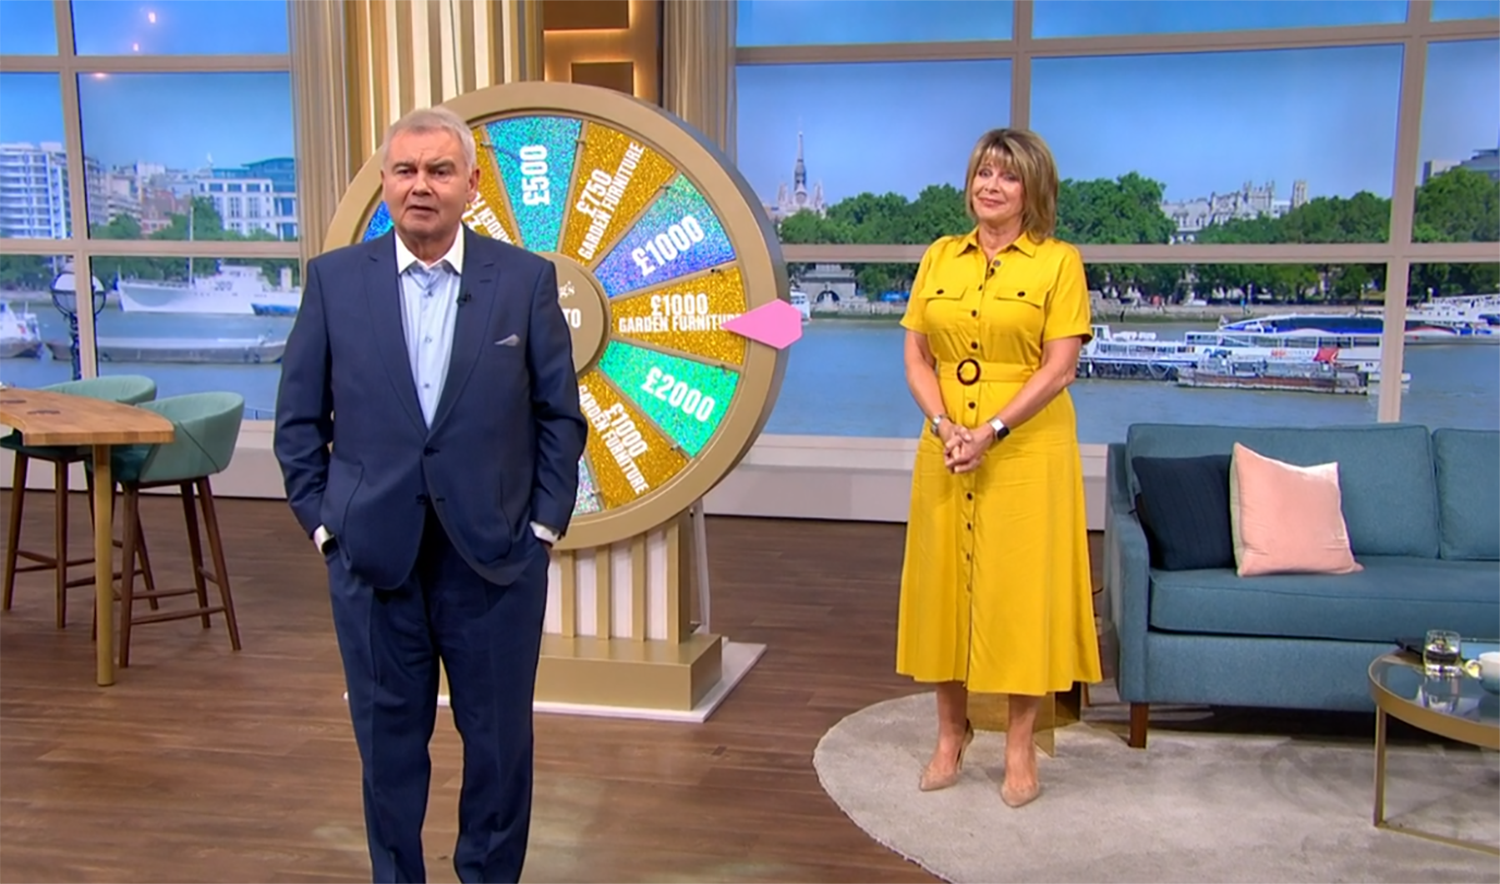 This Morning stars Eamonn Holmes and Ruth Langsford forced to scrap Spin To Win after awkward blunder